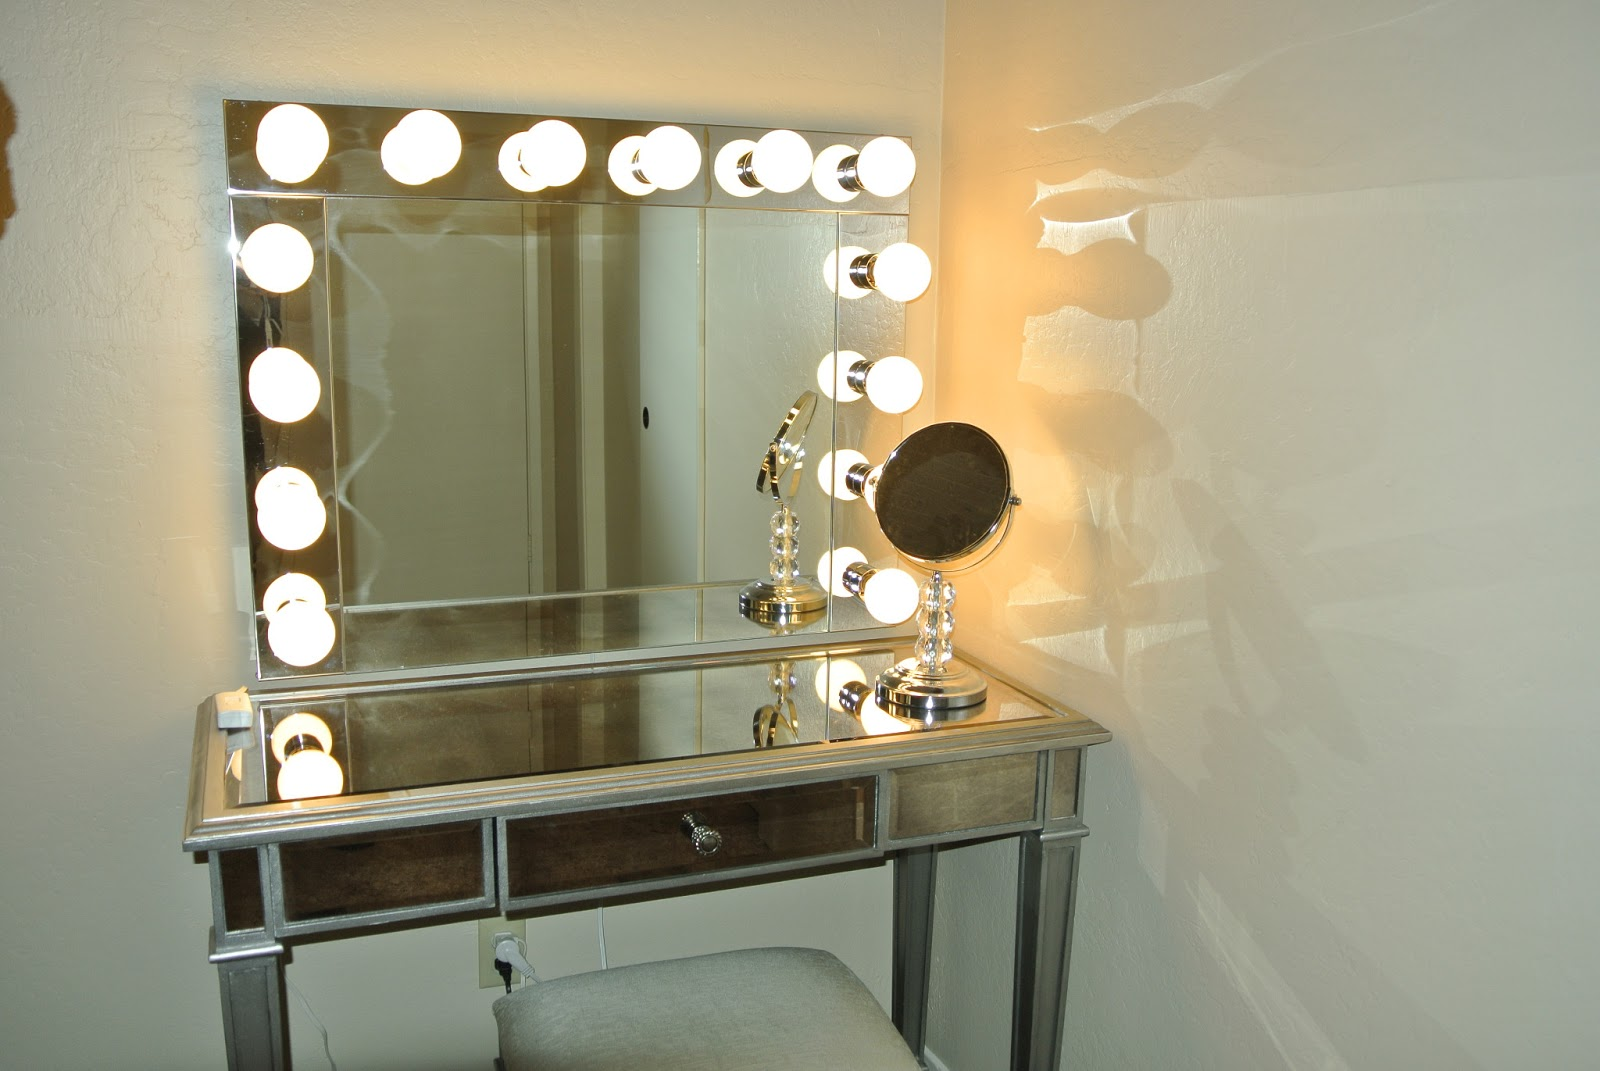 wall mounted light up mirror photo - 2